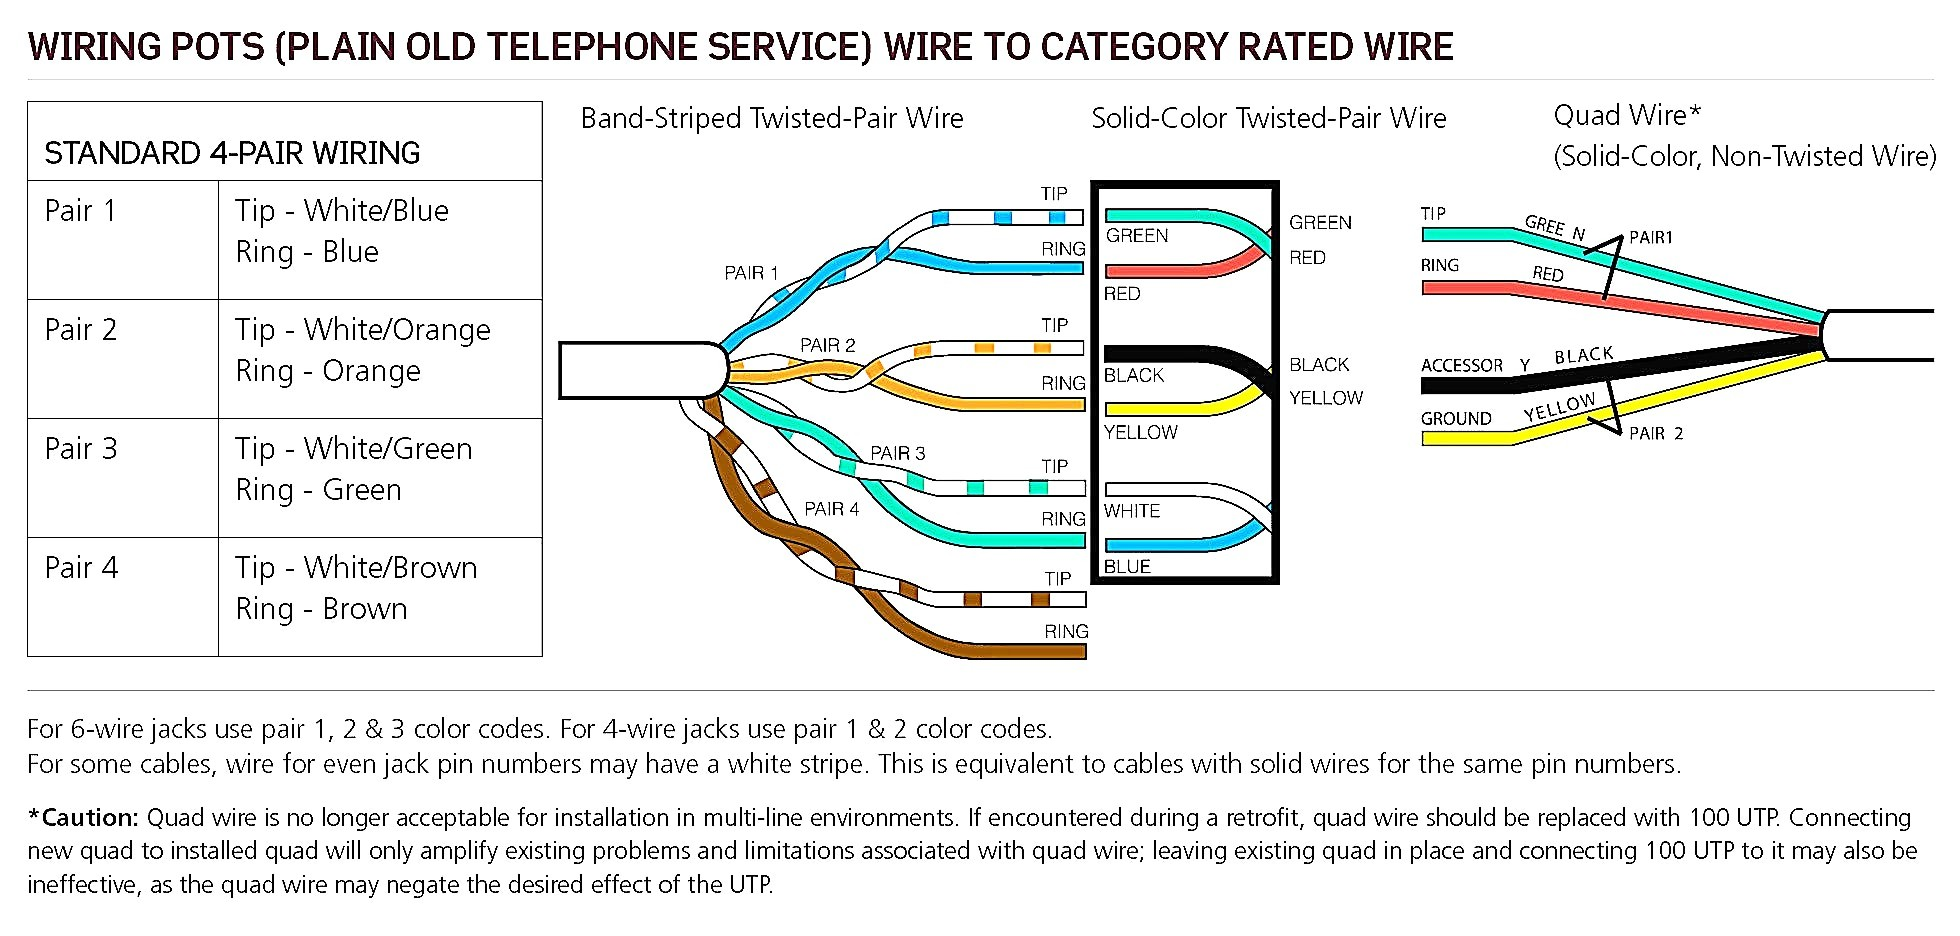 hight resolution of inside wiring and crossconnect install fax lines phone jacks dsl electric clock wiring diagram cat 5